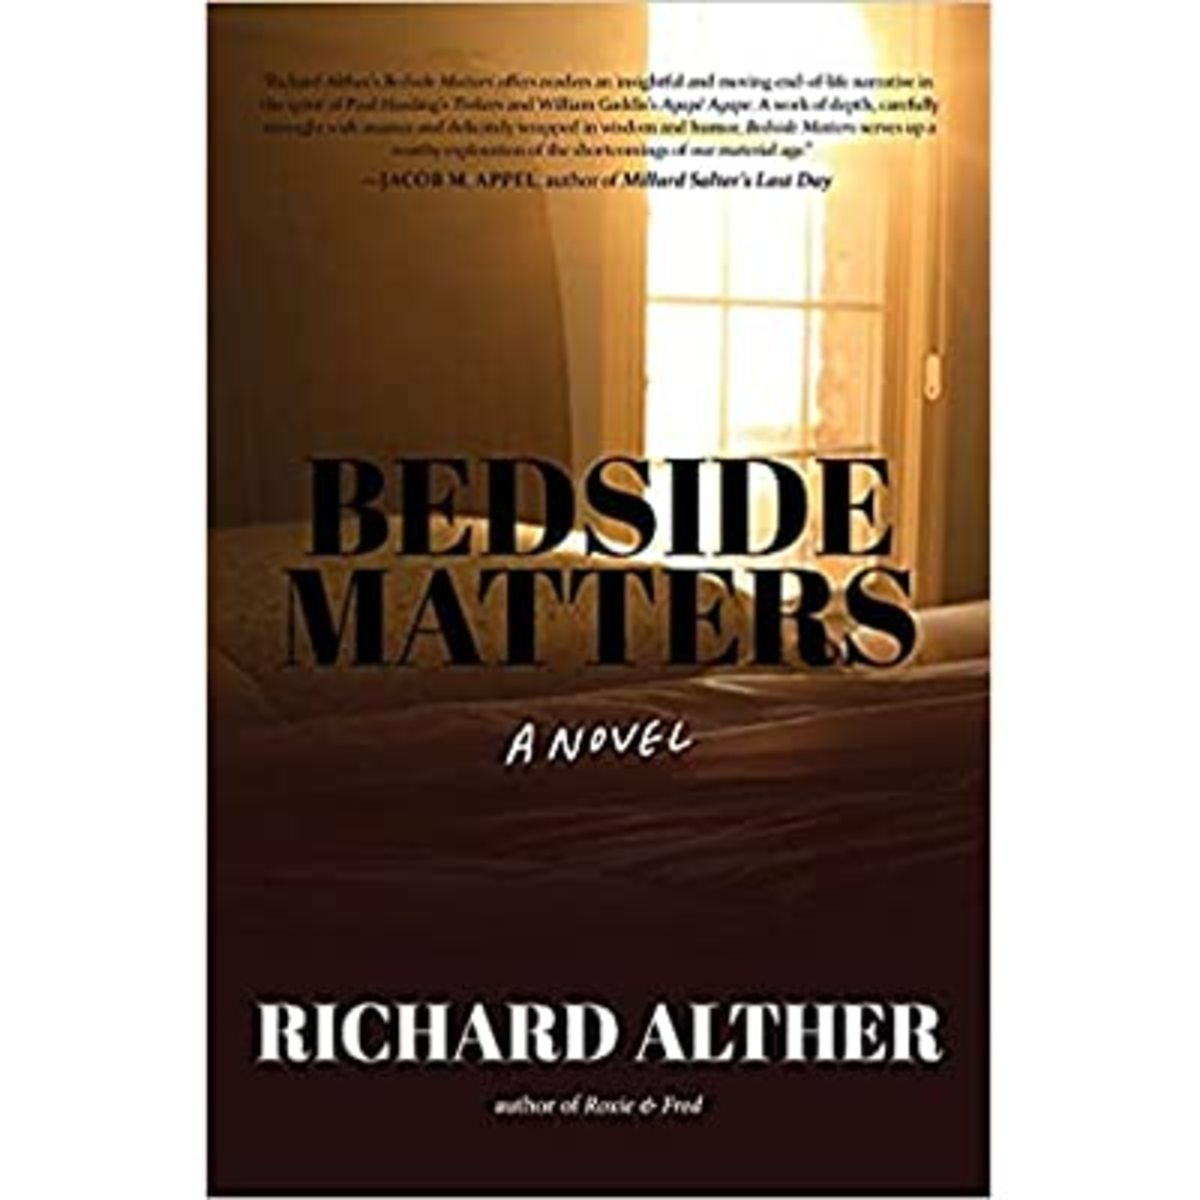 Beside Matters by Richard Alther